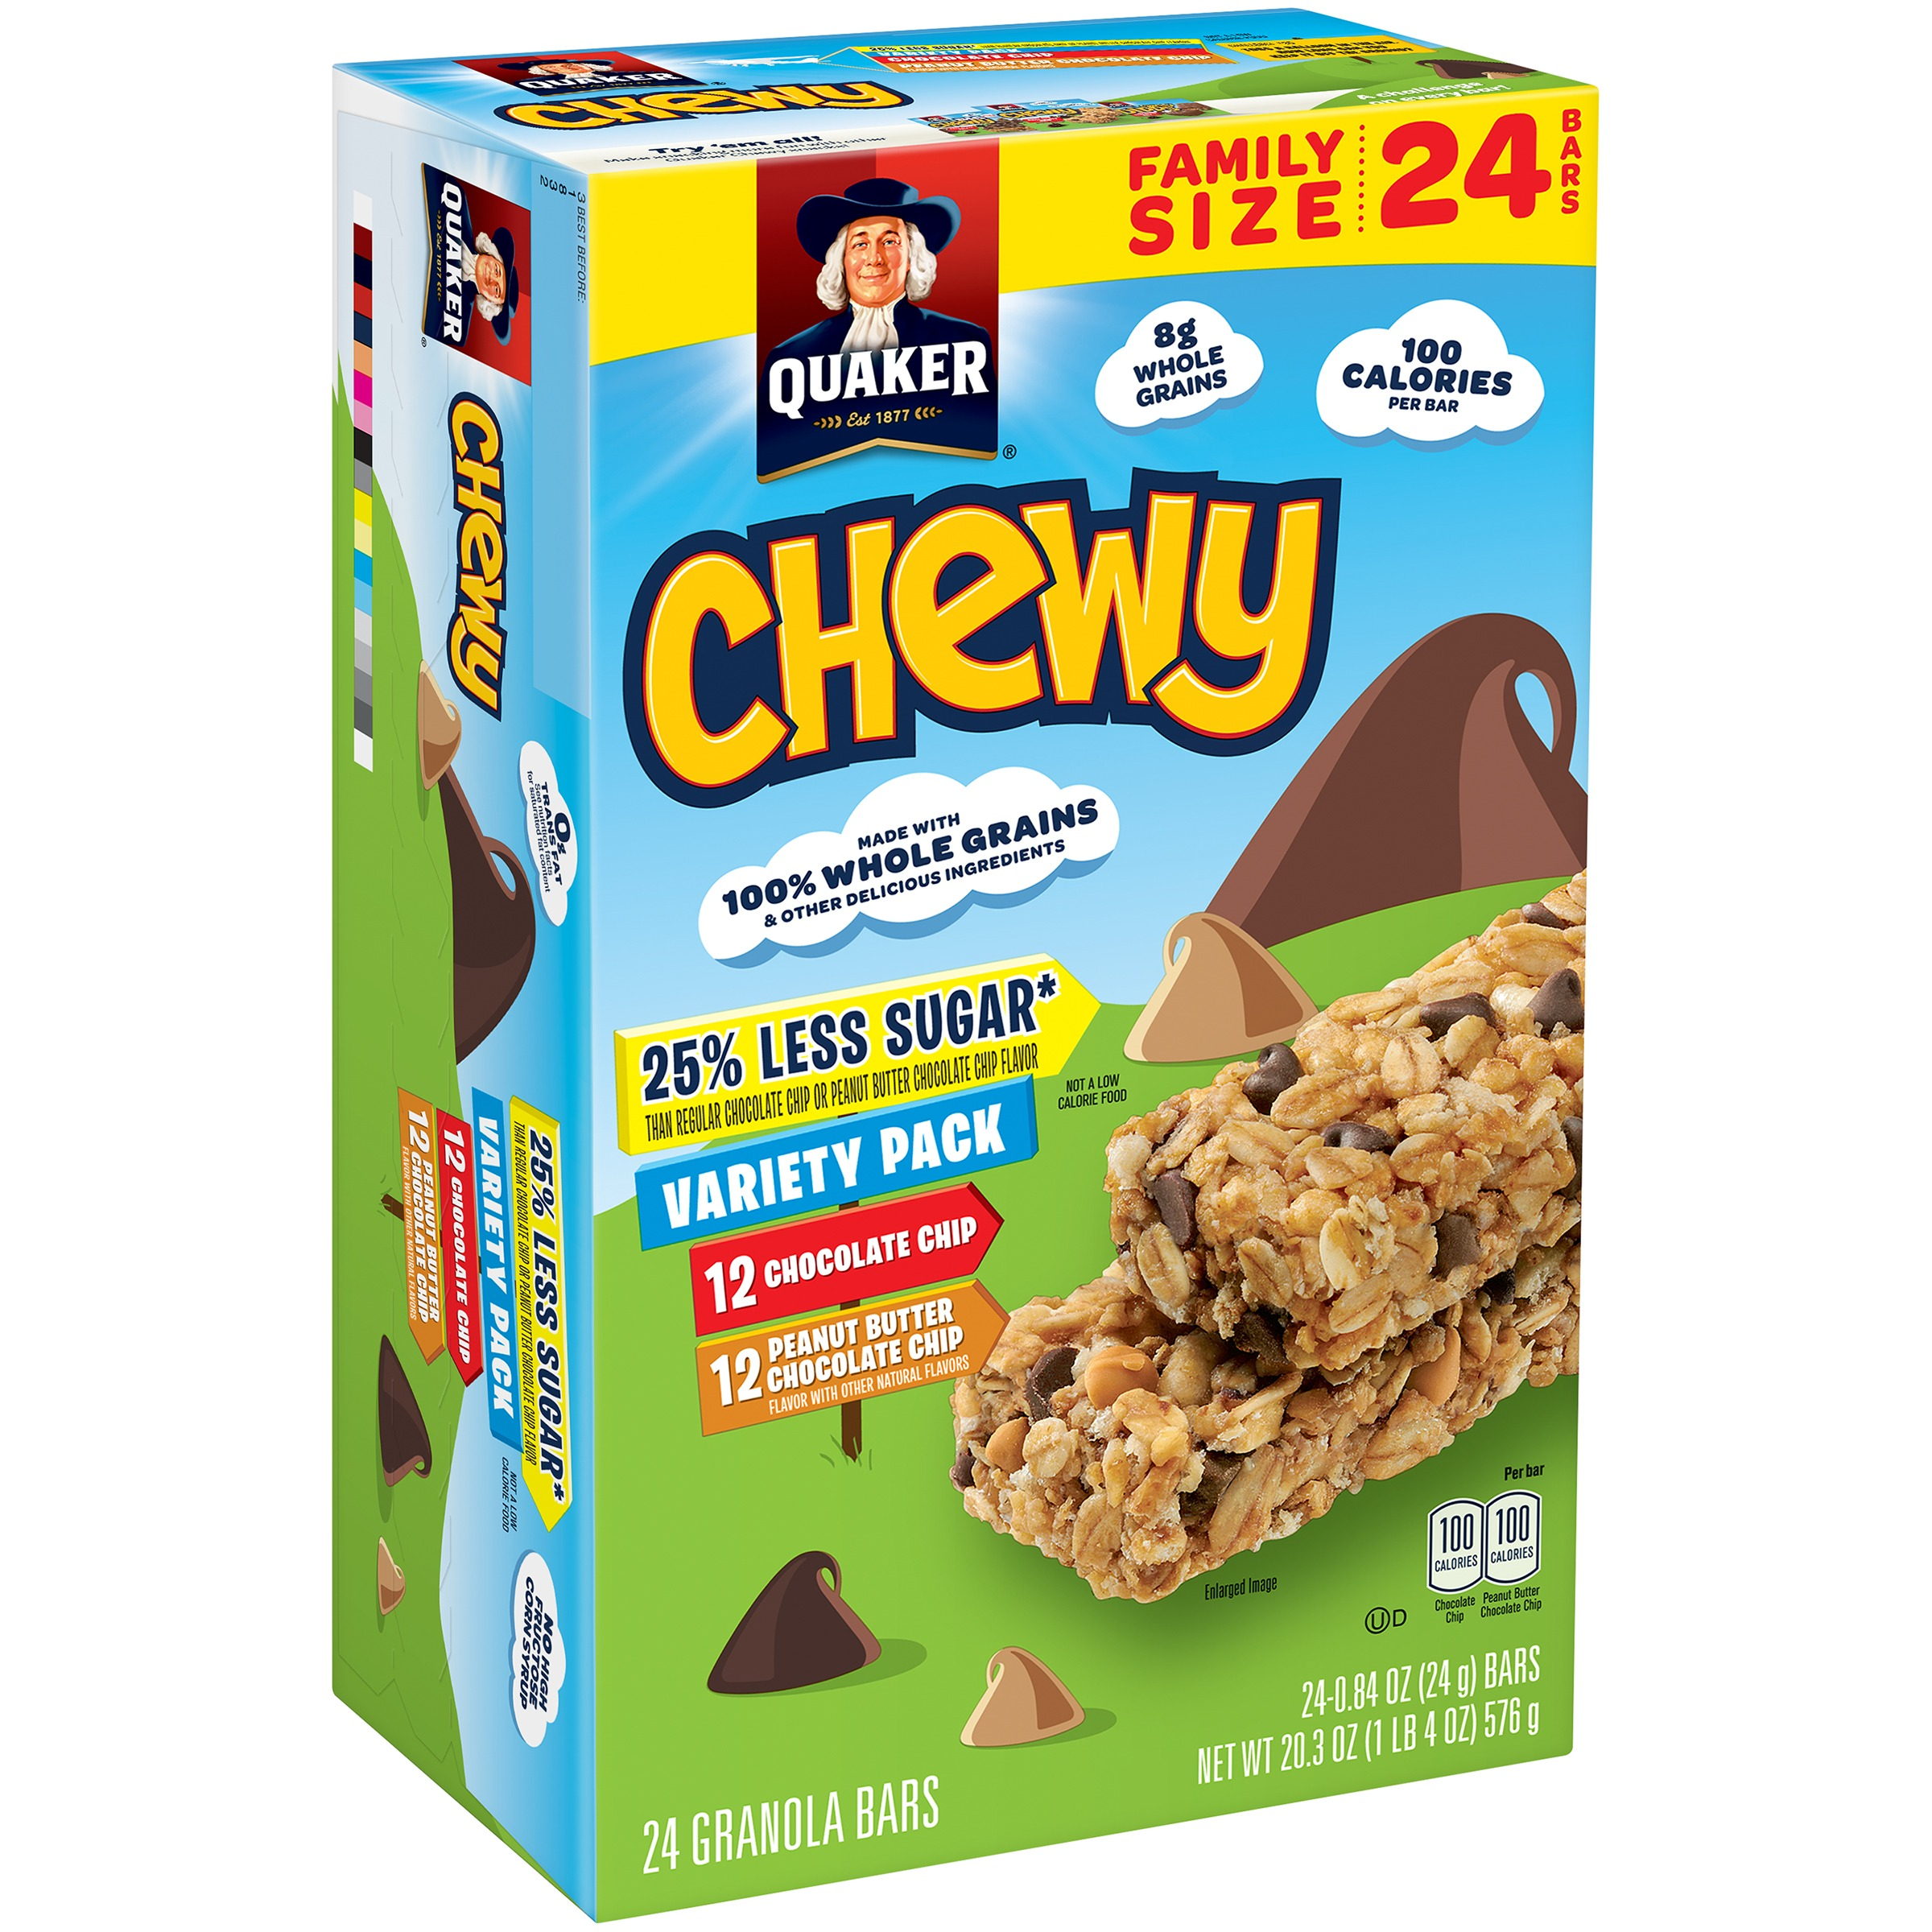 Quaker Chewy Granola Bars, Less Sugar Variety Pack, 24 Count